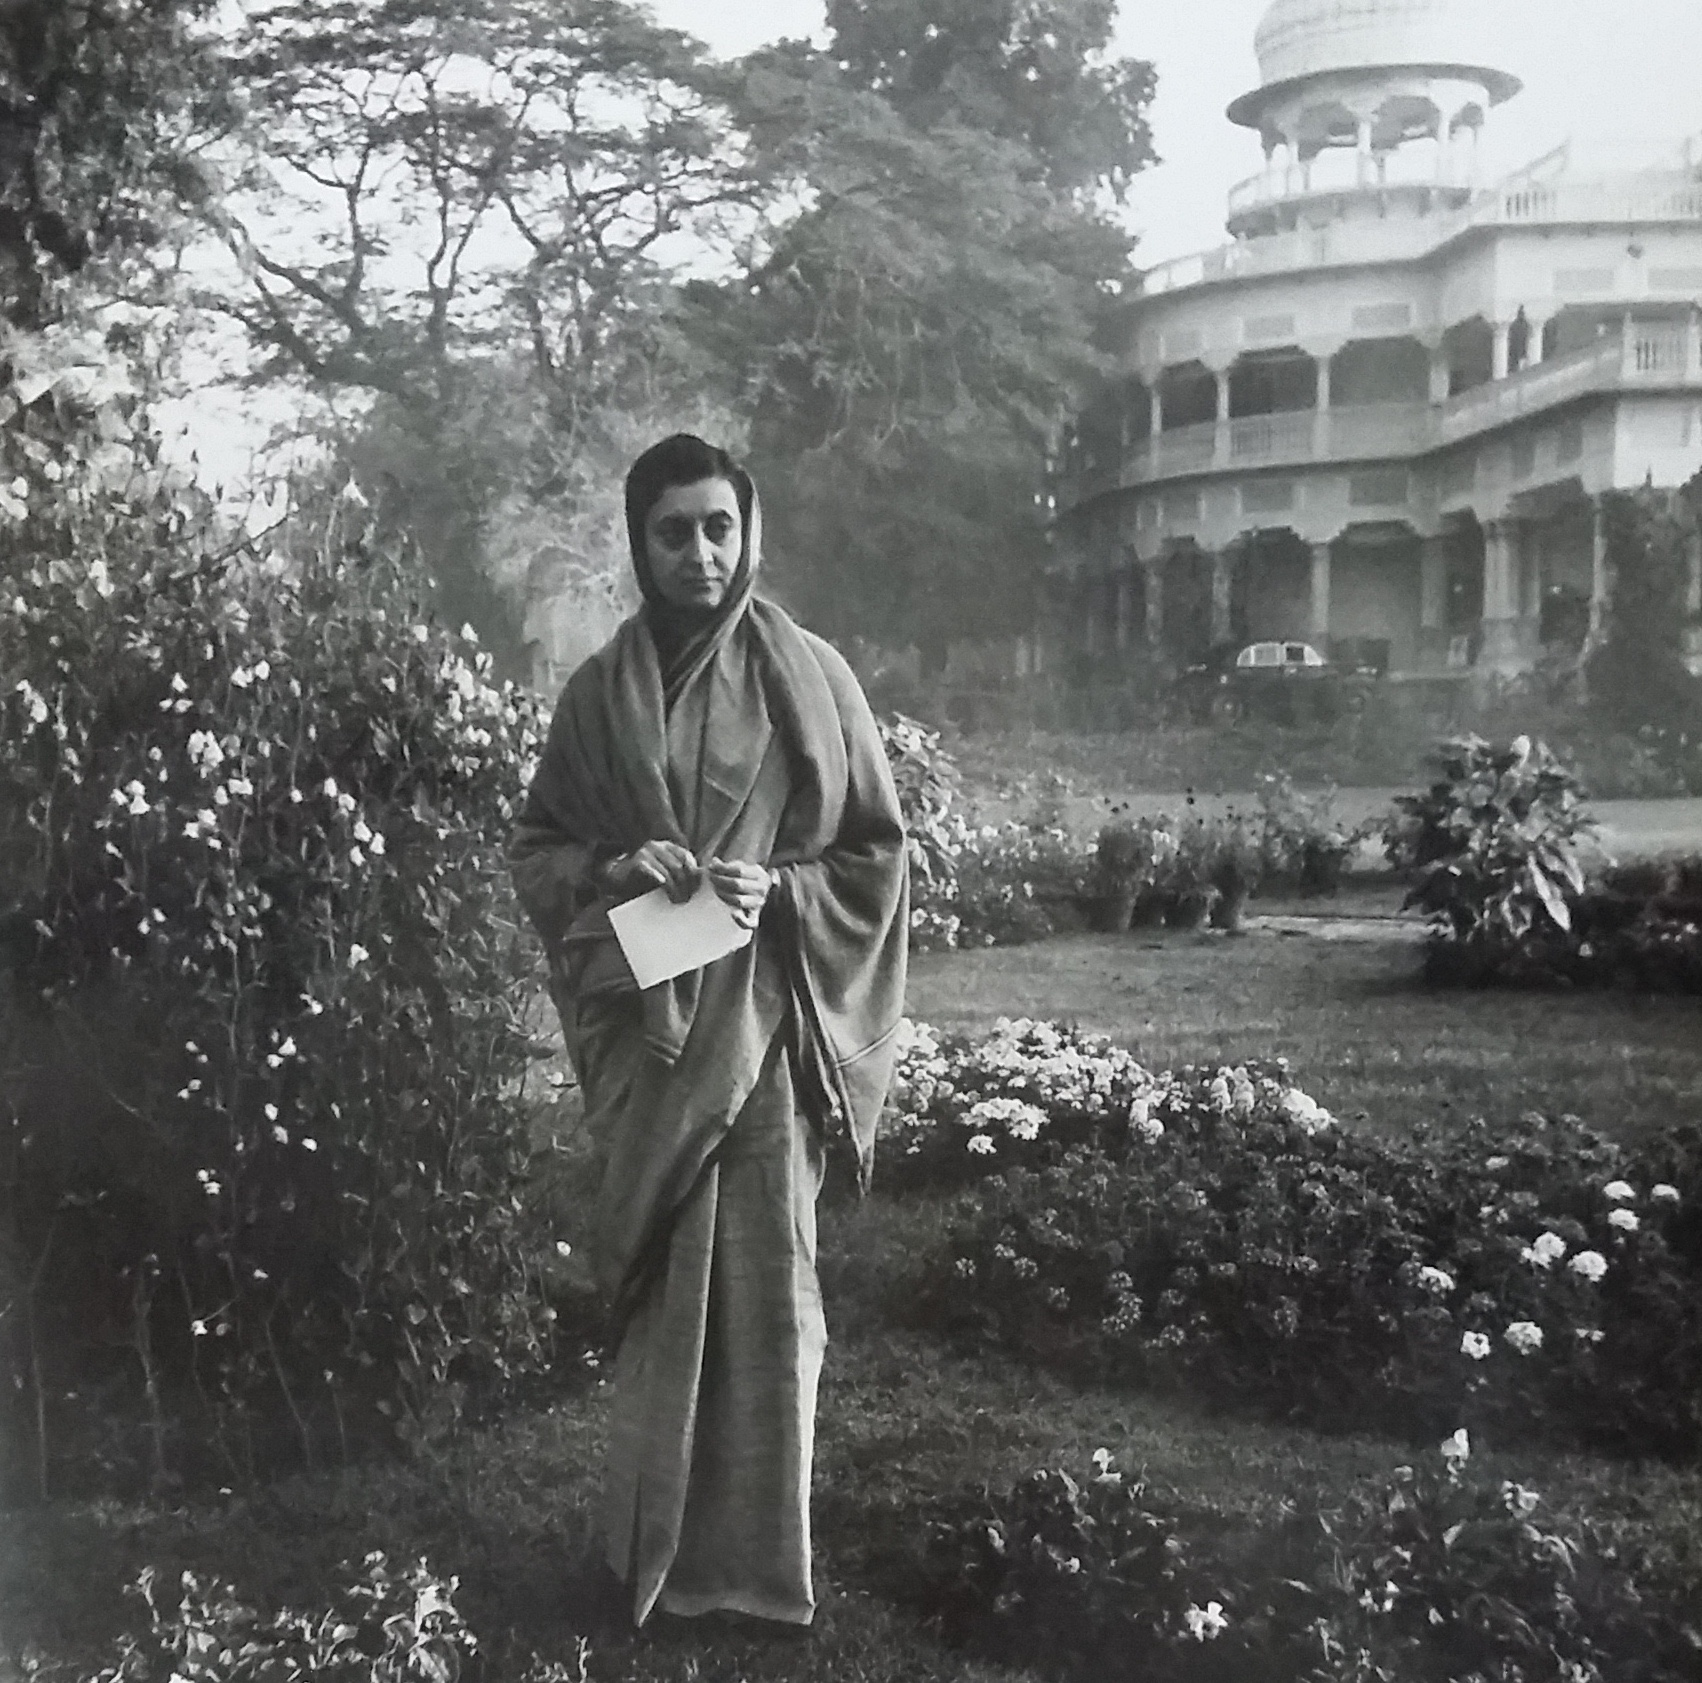 Indira Gandhi in the gardens at Anand Bhawan, her ancestral home, after becoming Congress president (1959). Allahabad, Uttar Pradesh. Courtesy: Indira Gandhi Memorial Trust